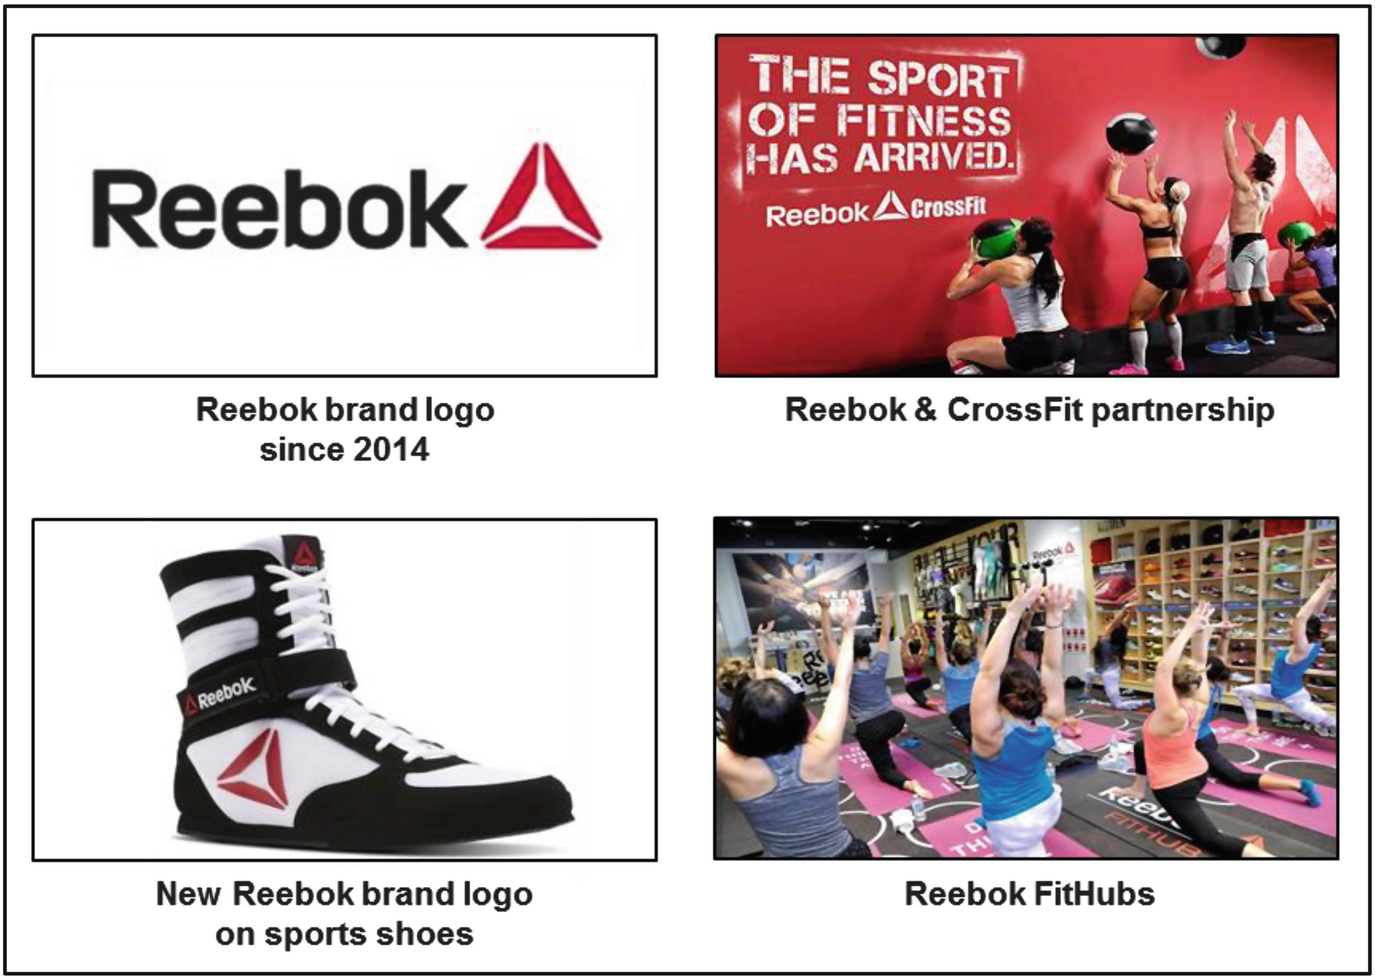 competitive price 7b685 7fe4a Adidas and Reebok  Is Acquiring Easier than Integrating    SpringerLink